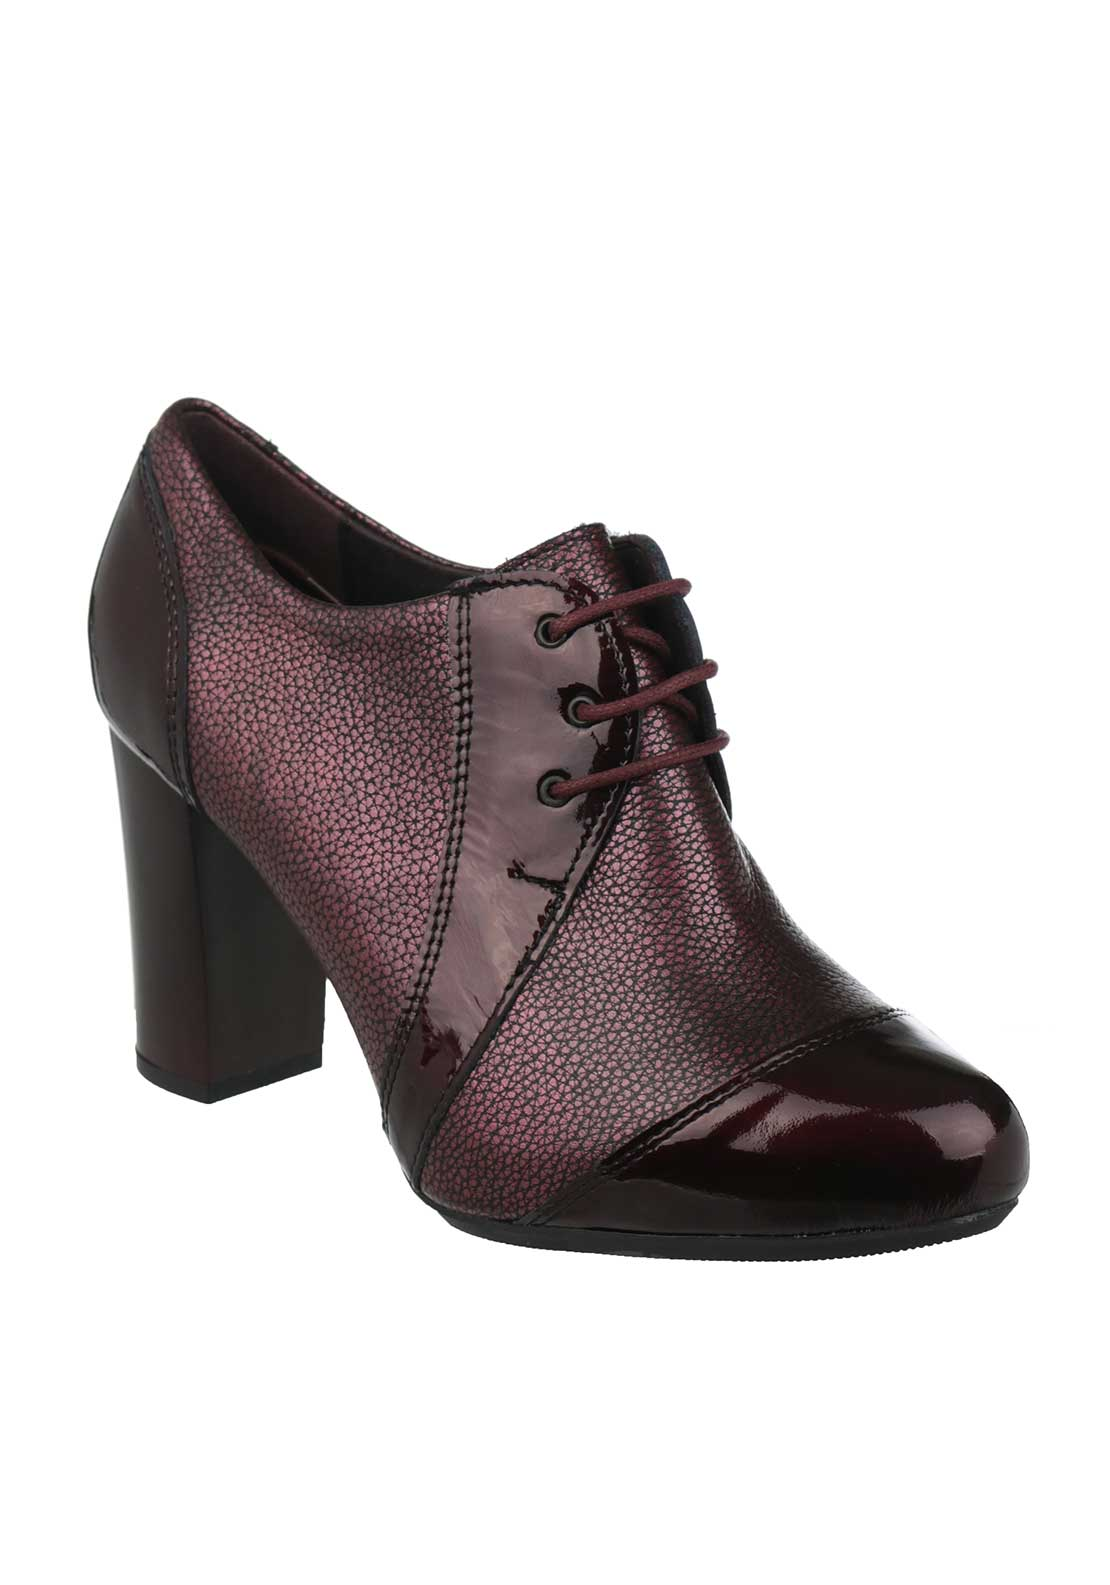 Pitillos Leather Metallic Heeled Brogues, Burgundy